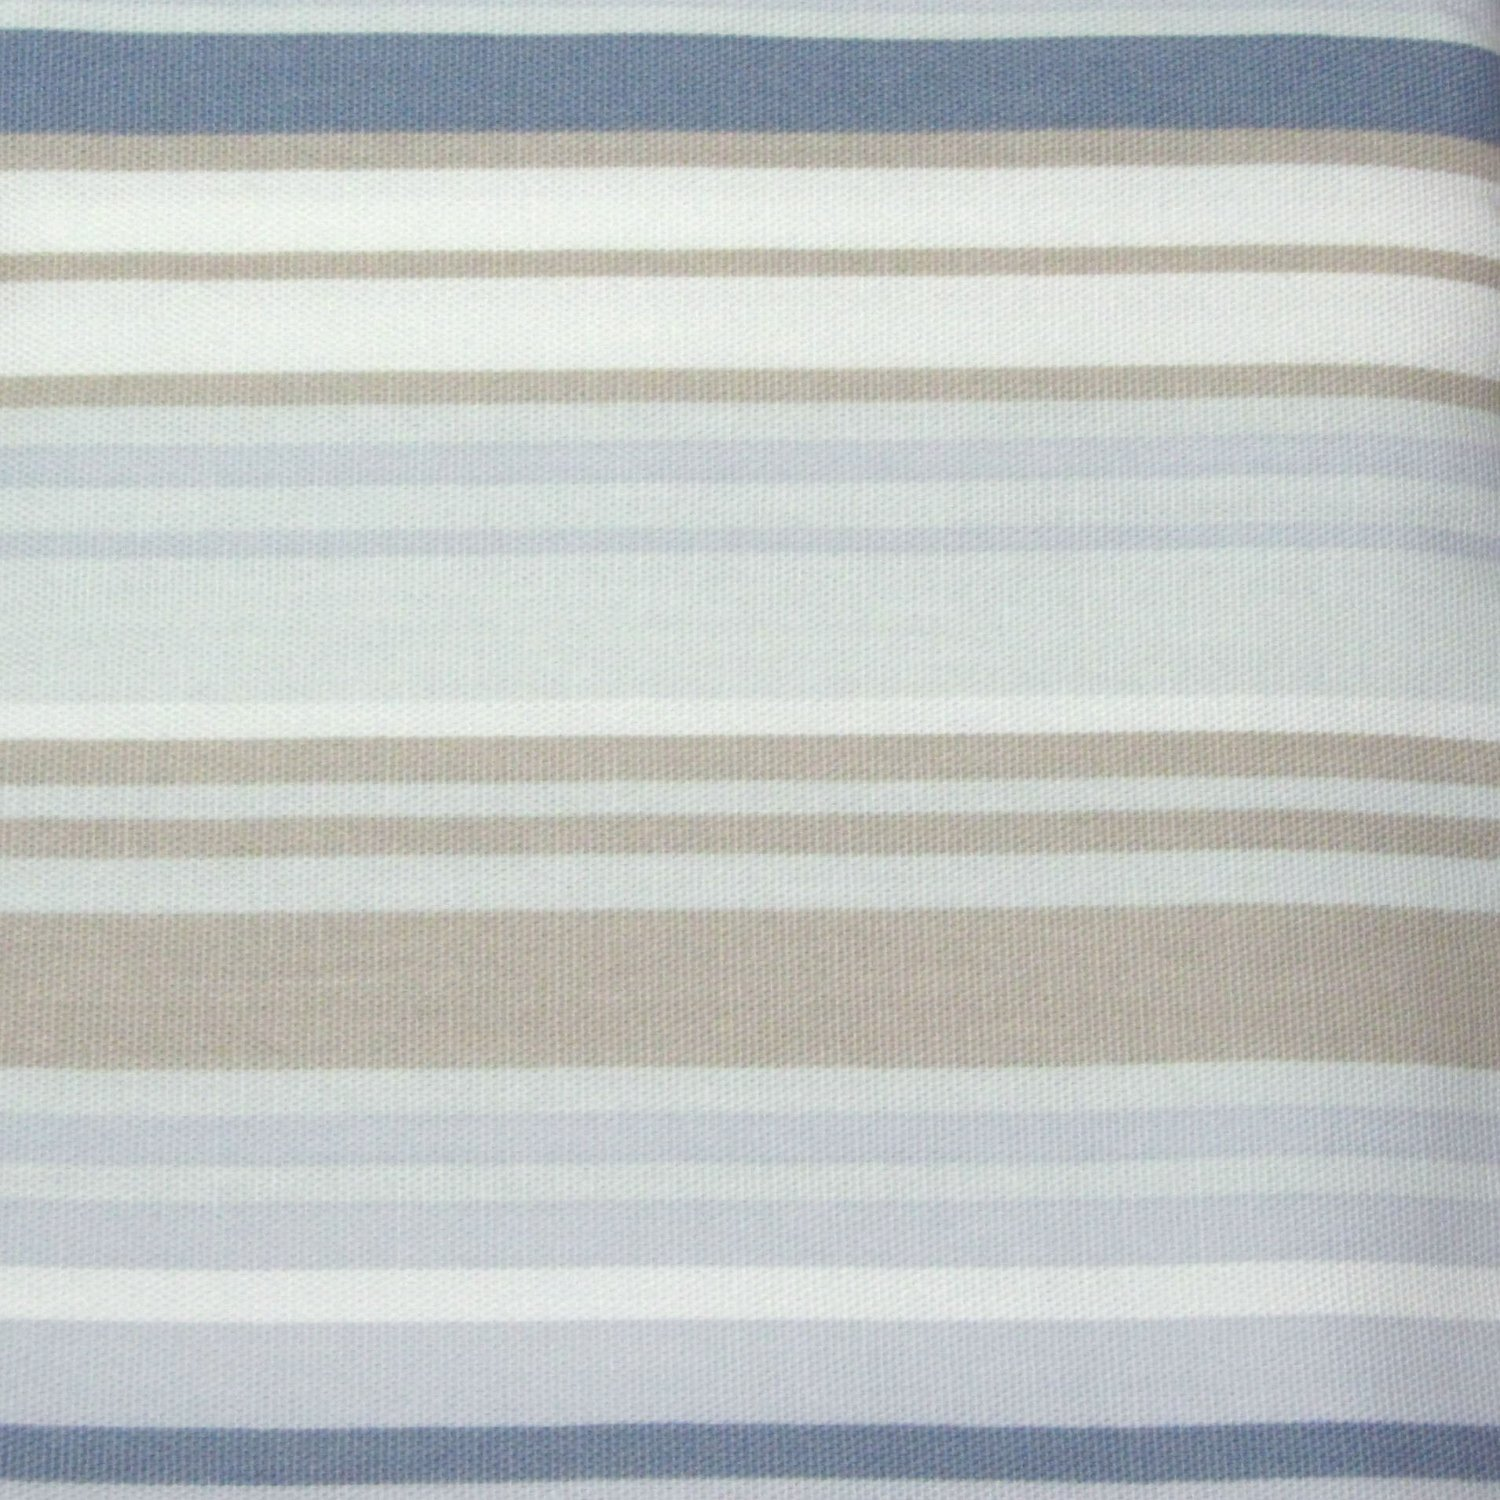 kohls free spirit blue tan stripe shower curtain. Black Bedroom Furniture Sets. Home Design Ideas